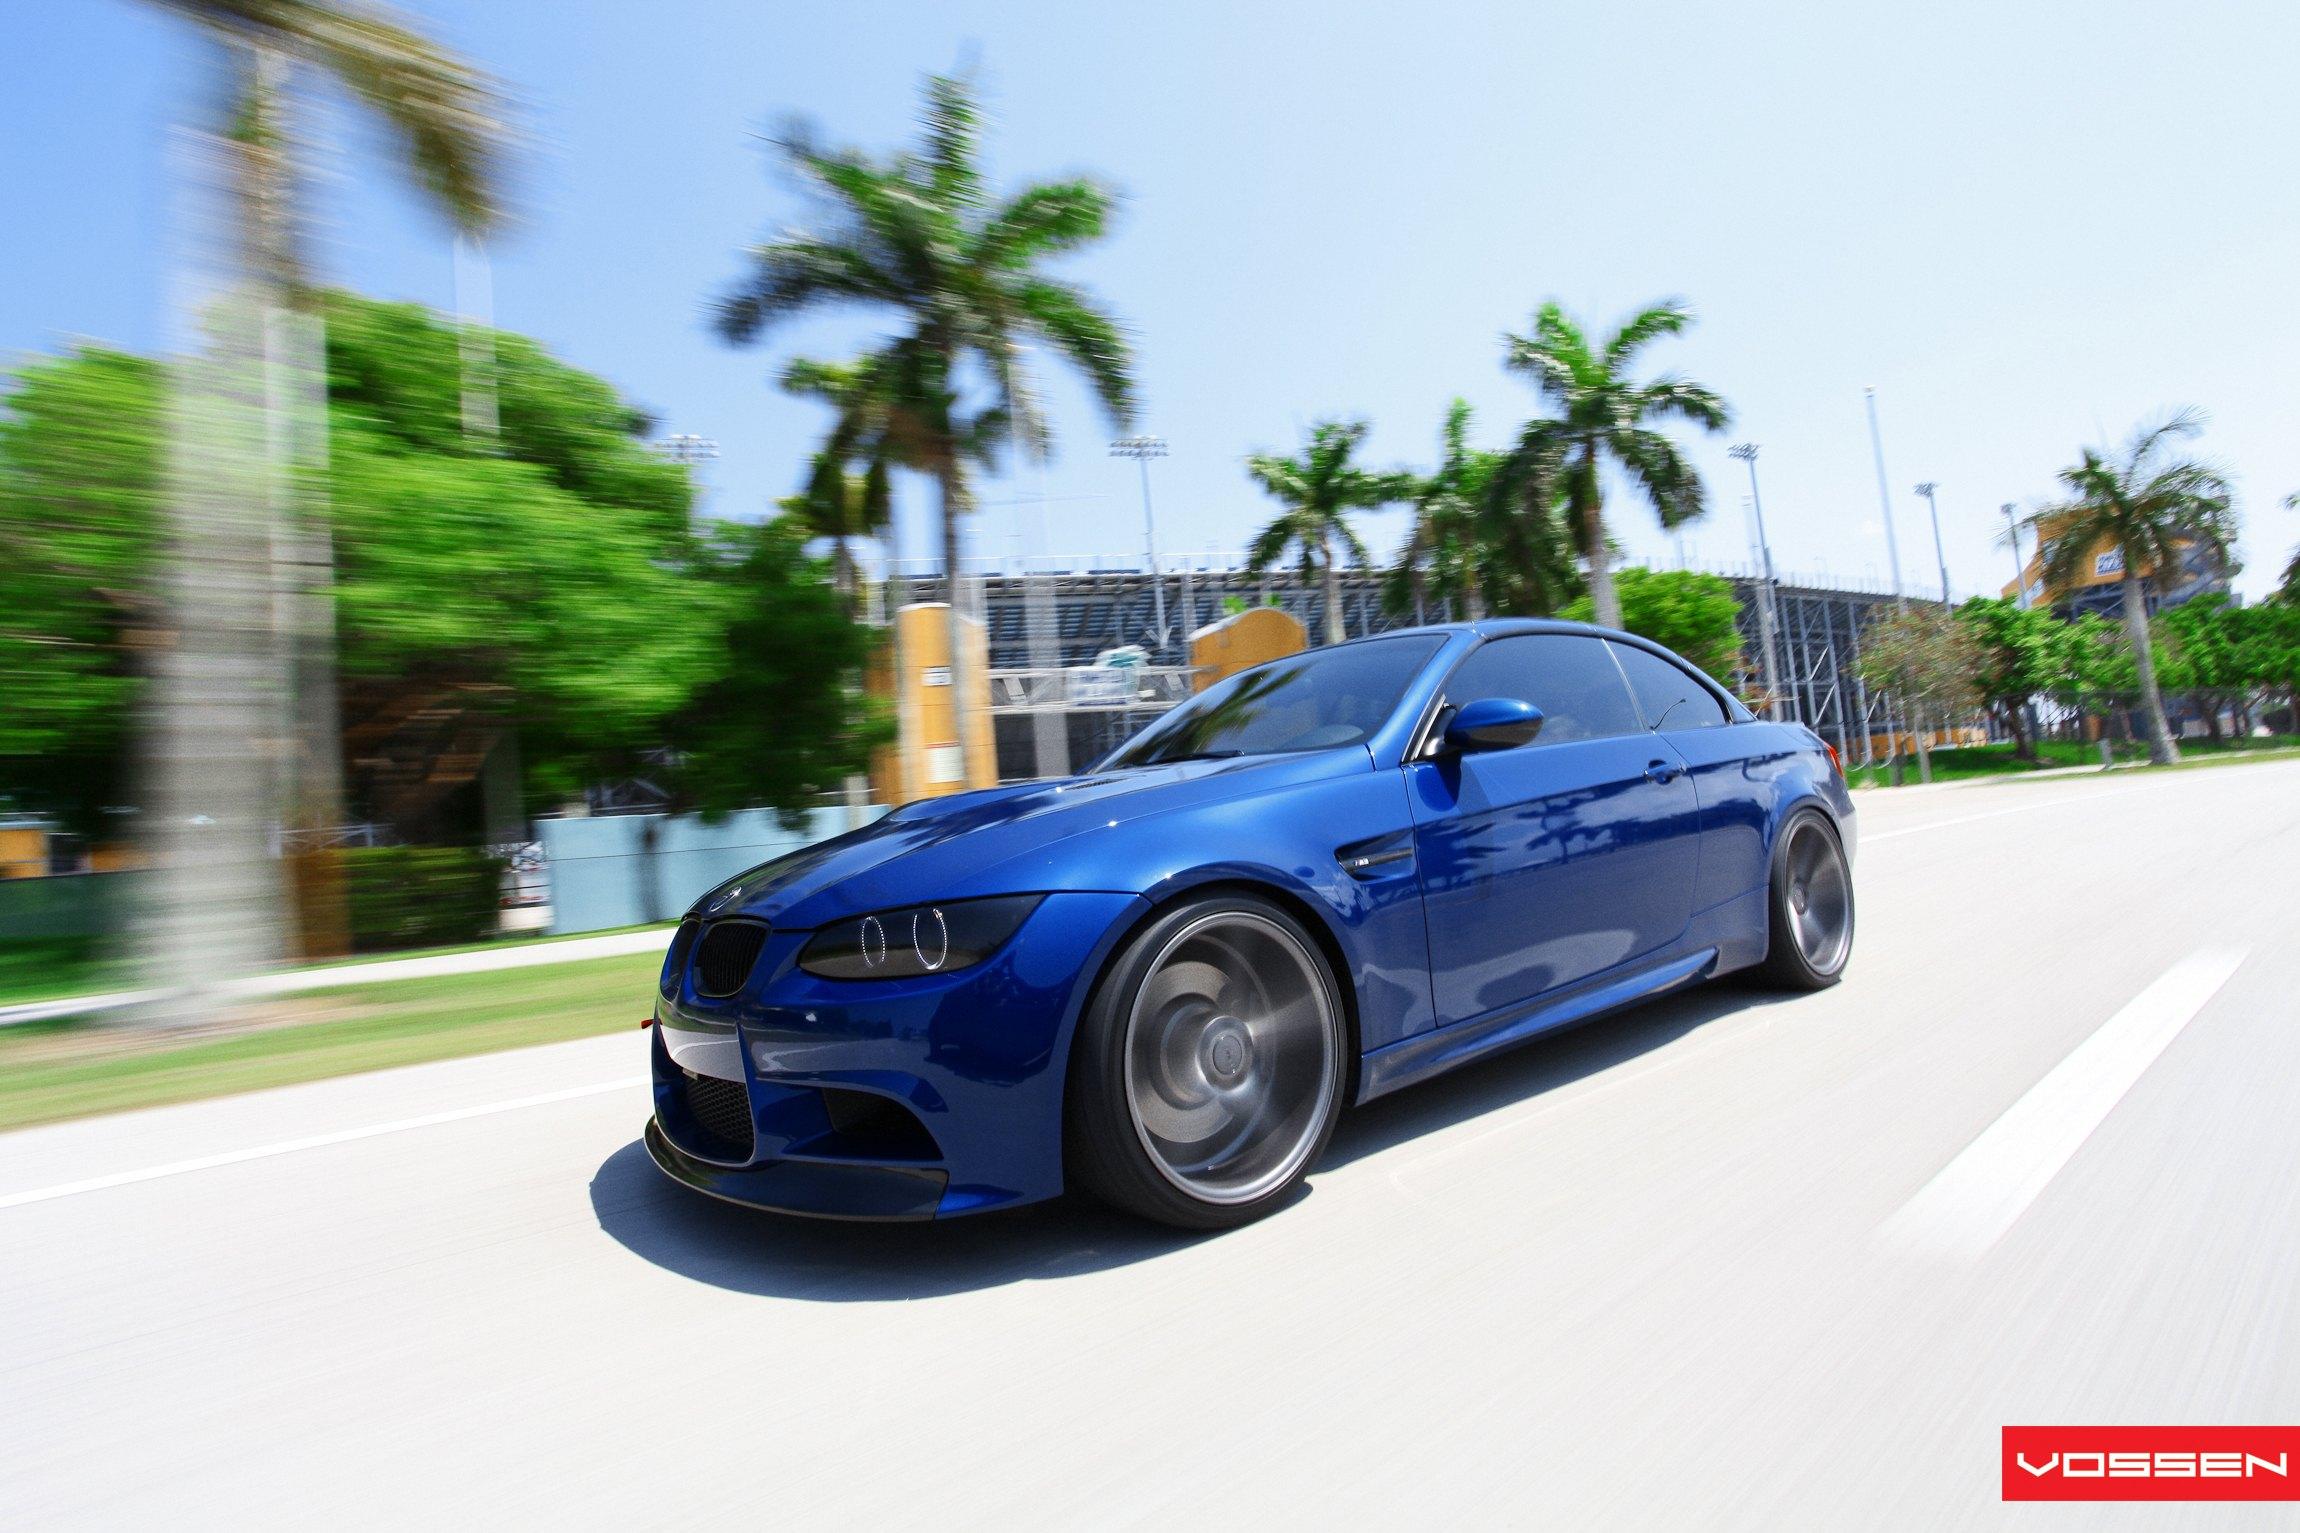 Dark Smoke Halo Headlights on Blue BMW 3-Series - Photo by Vossen